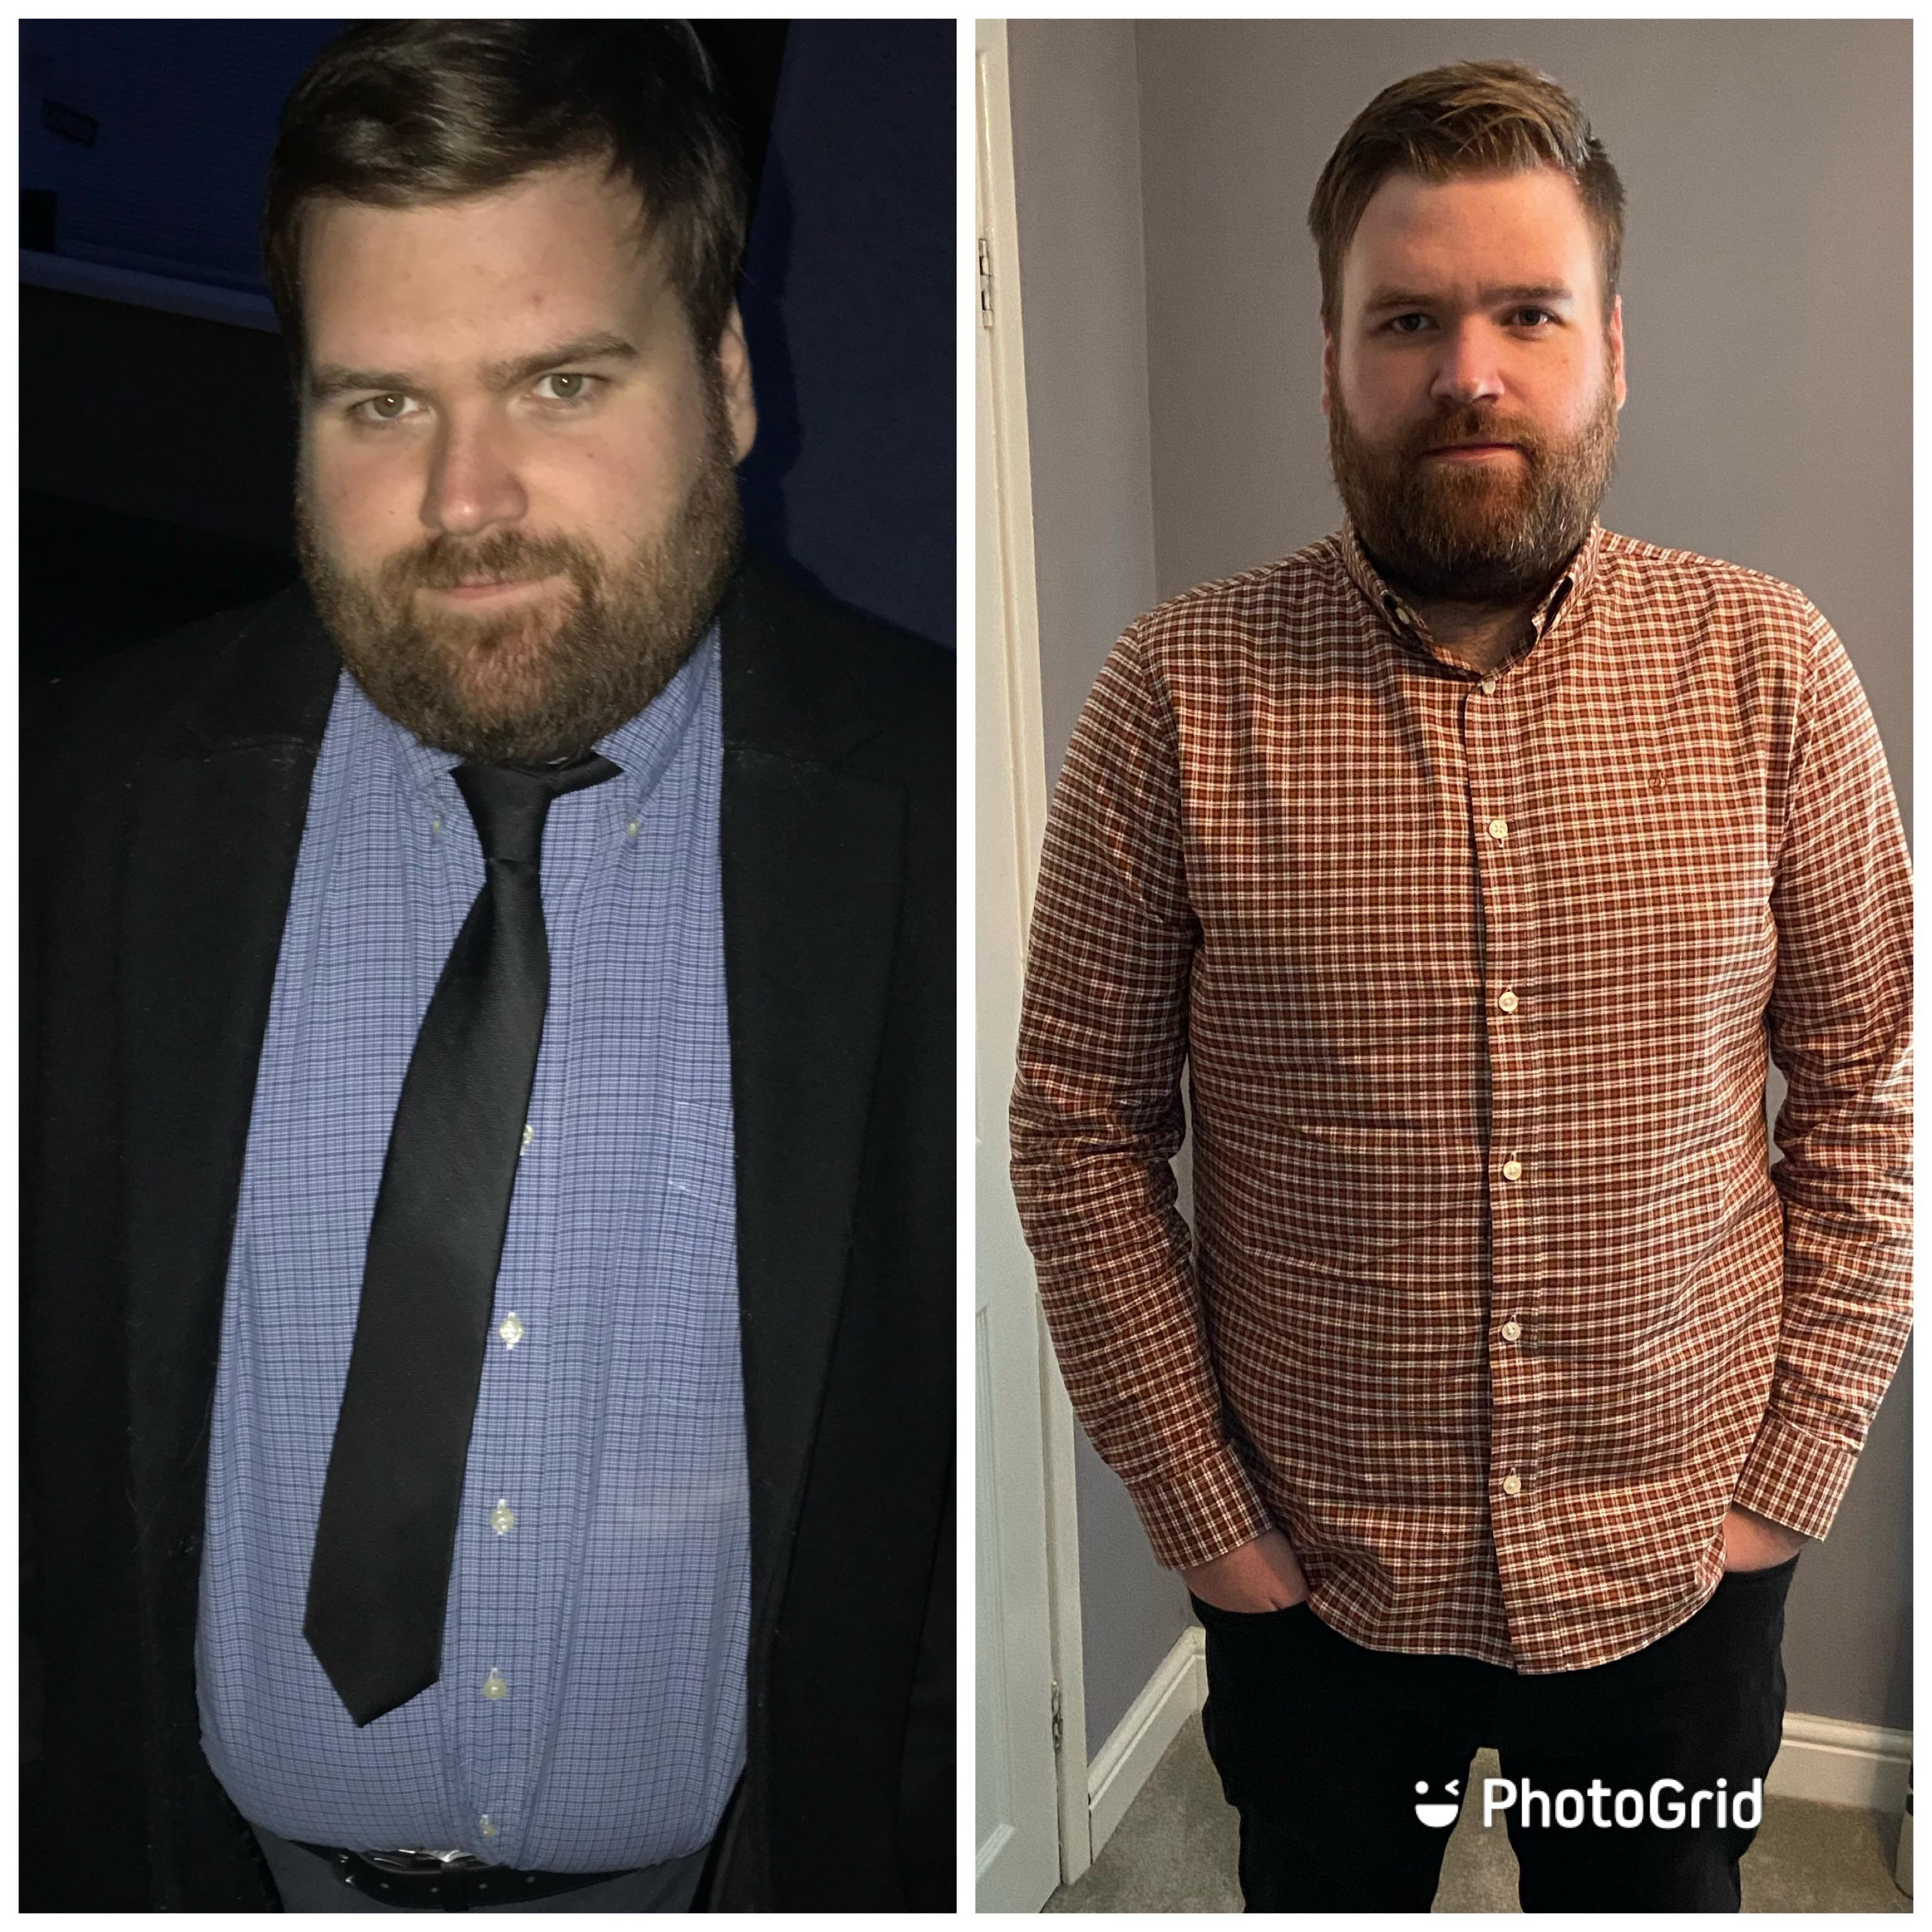 60 lbs Fat Loss Before and After 6 feet 2 Male 290 lbs to 230 lbs